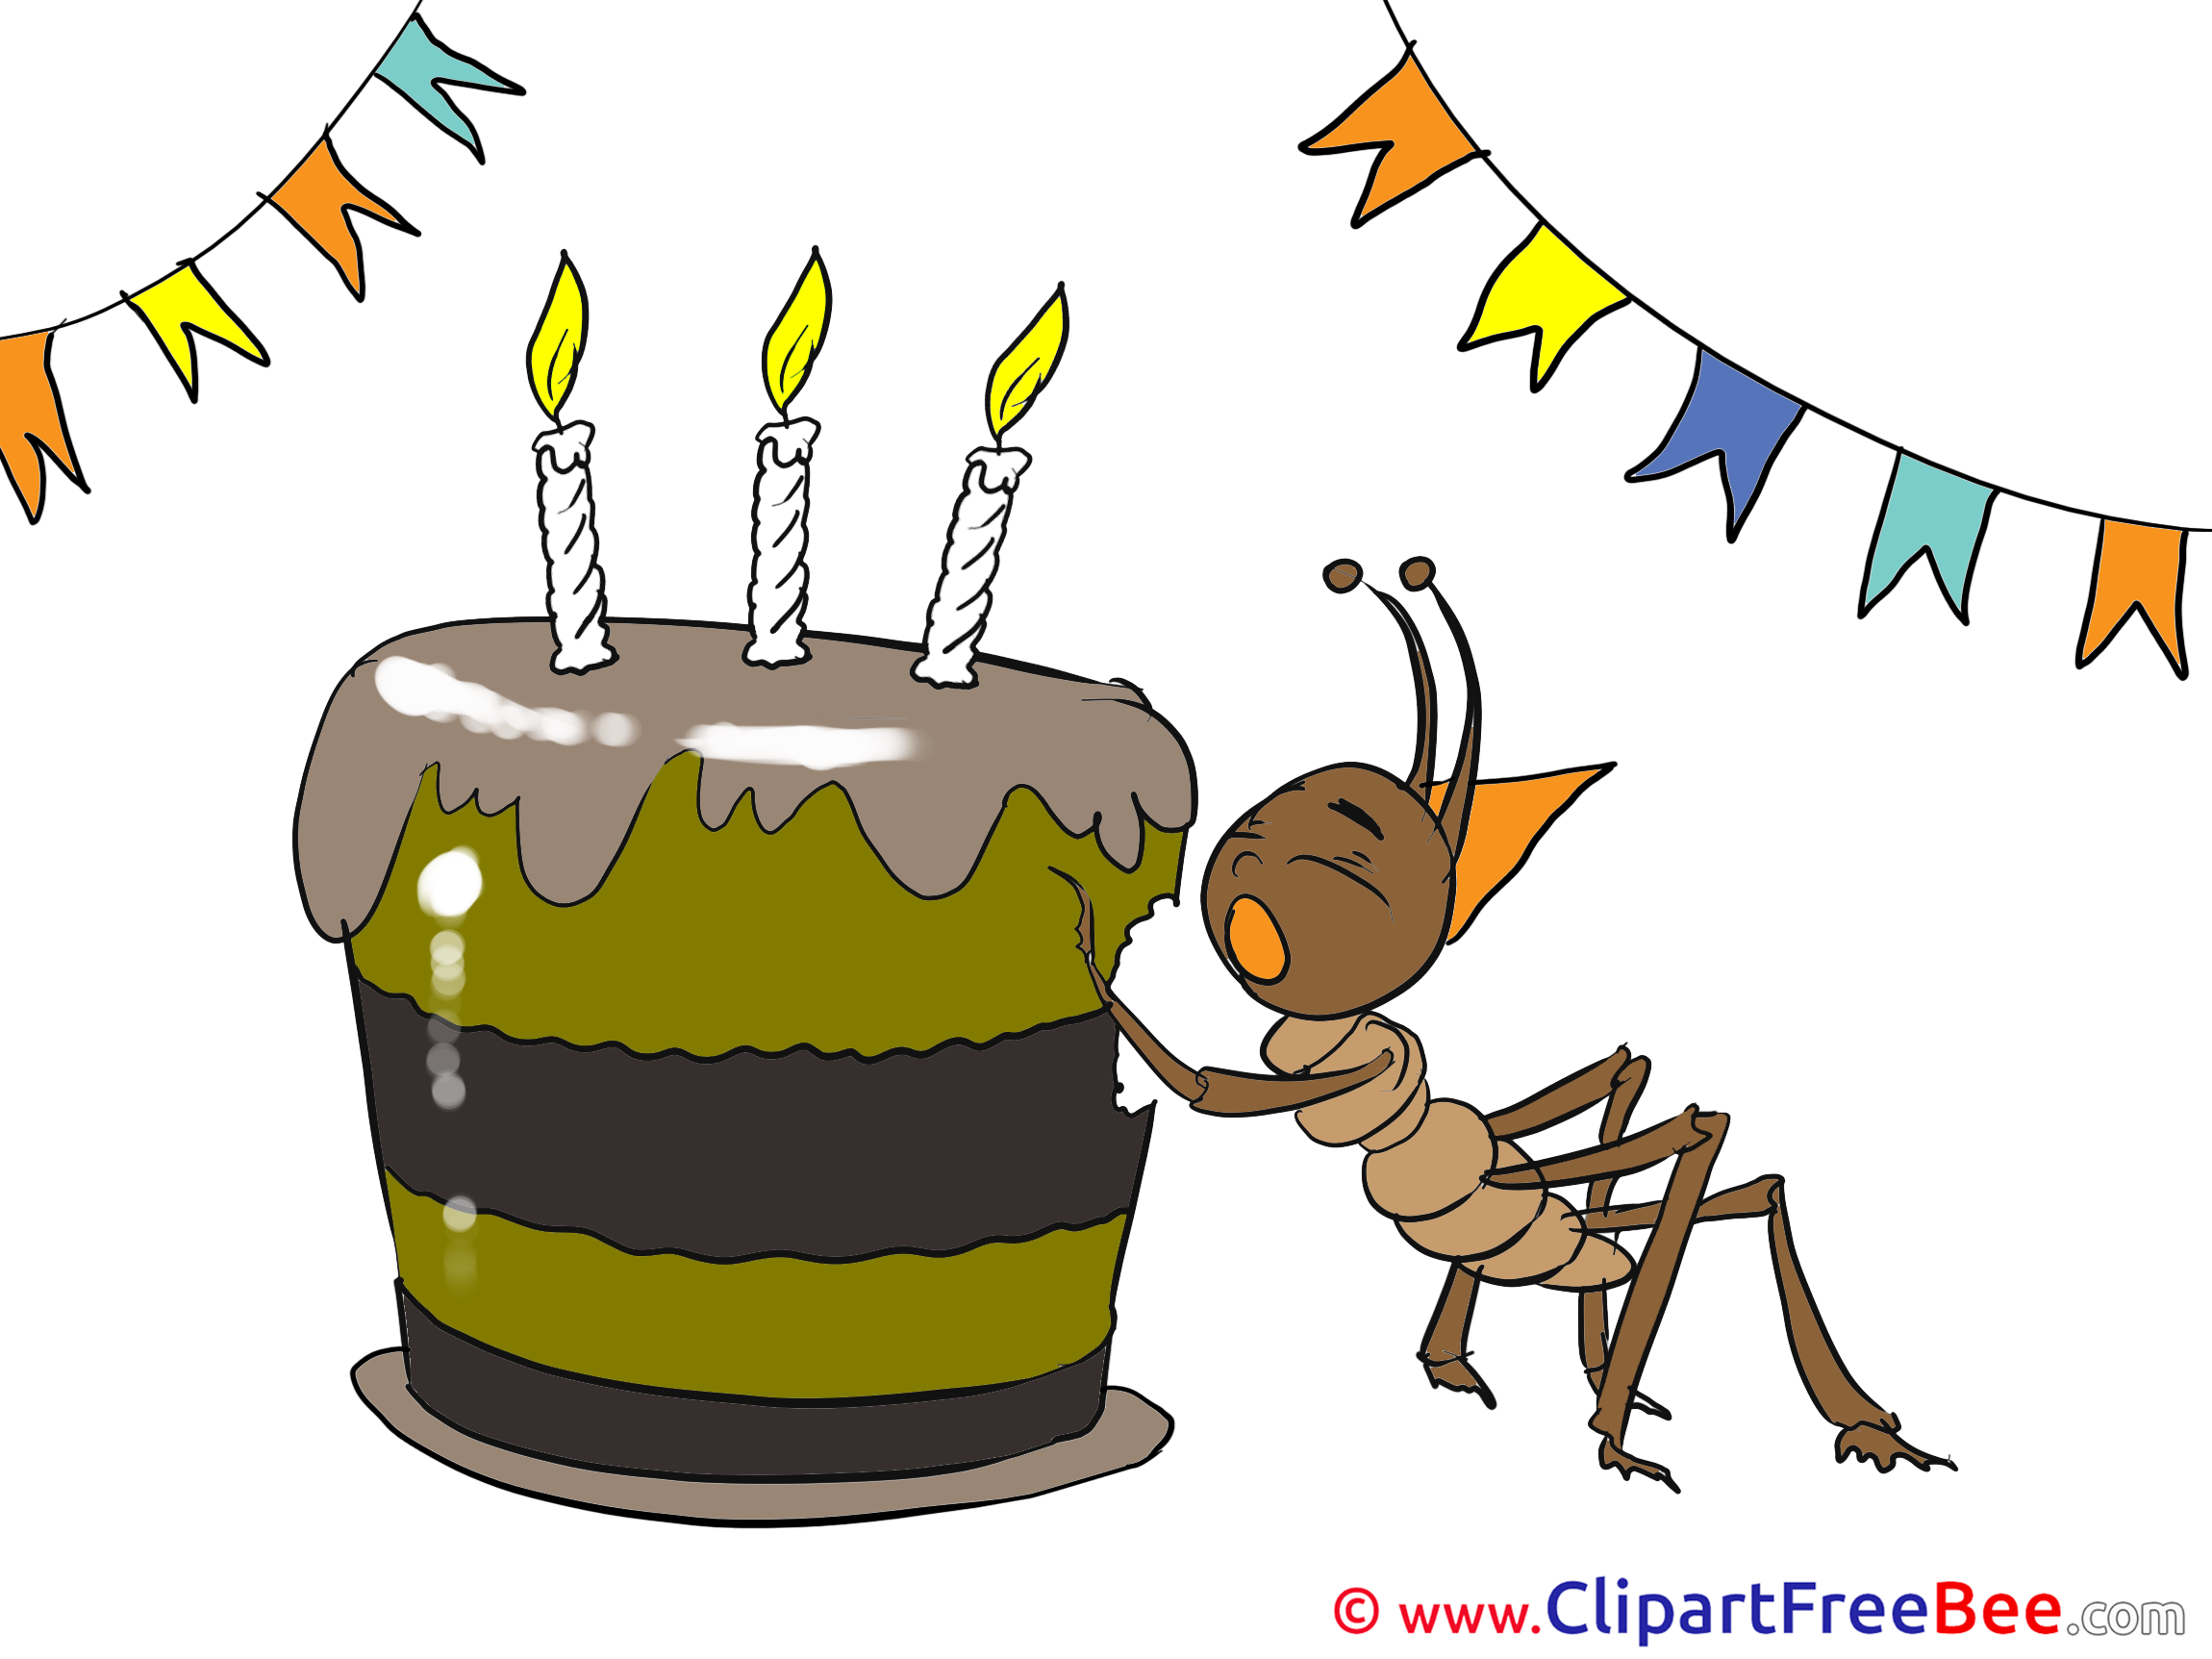 Ant clipart cake For Cake Illustrations free